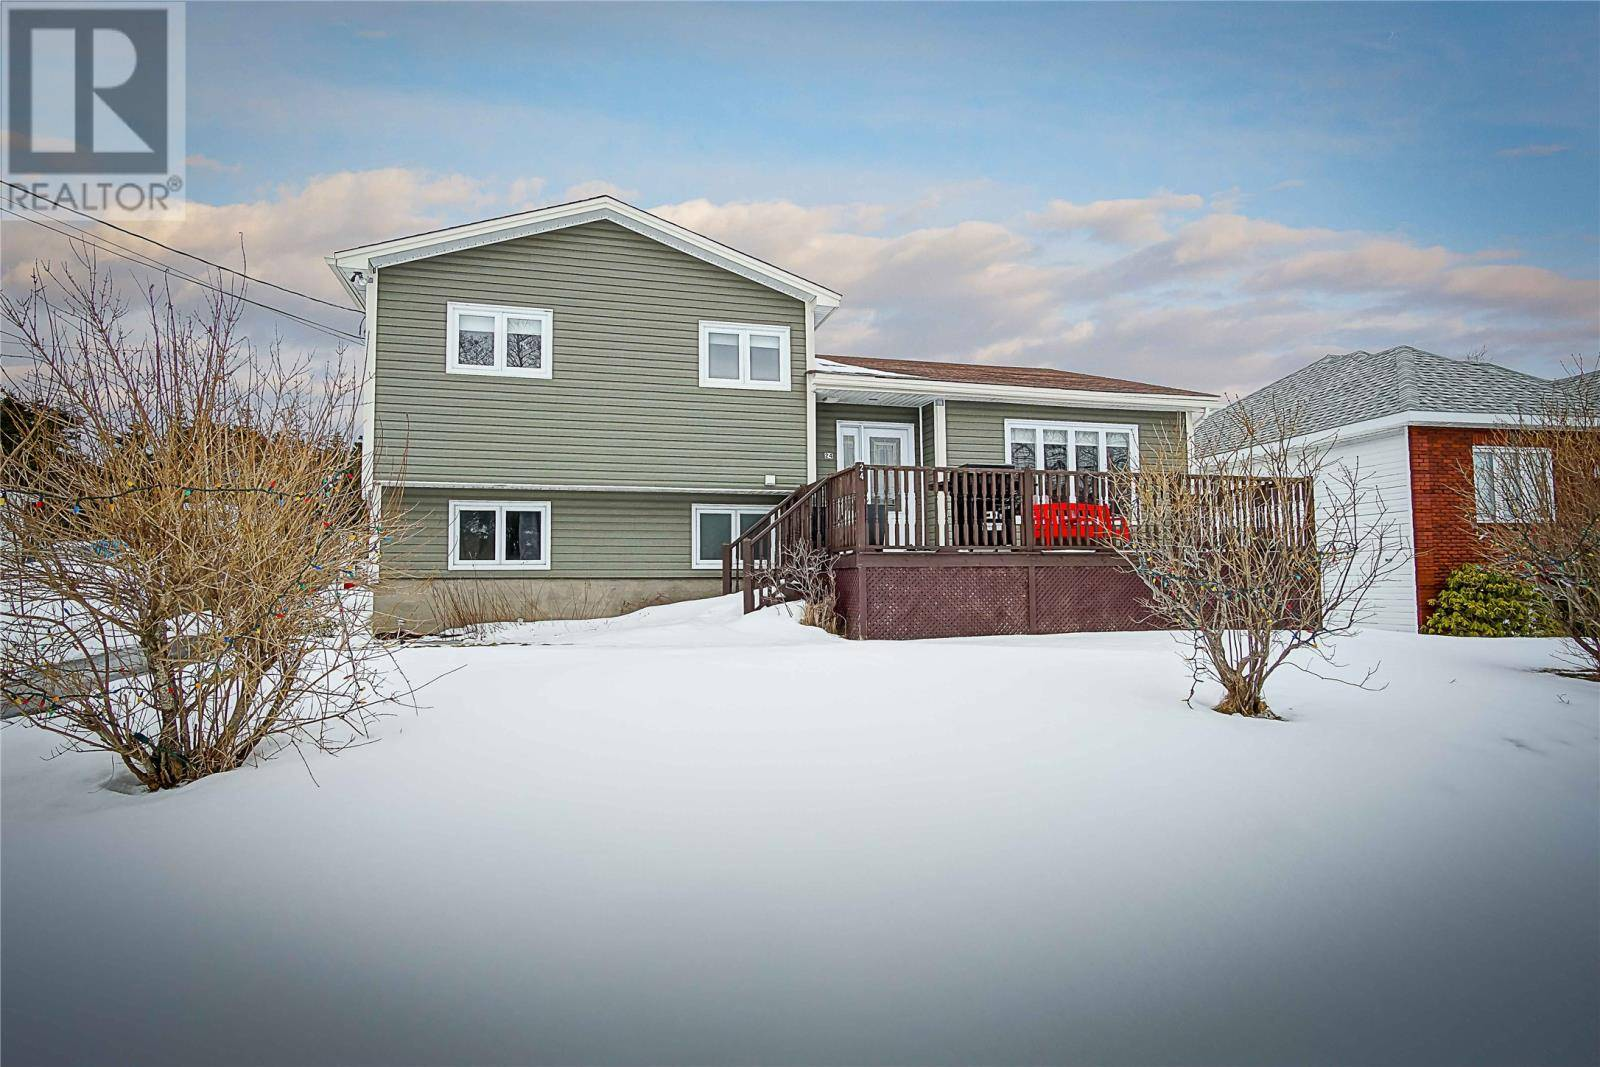 House for sale at 24 Millers Rd Conception Bay South Newfoundland - MLS: 1211260